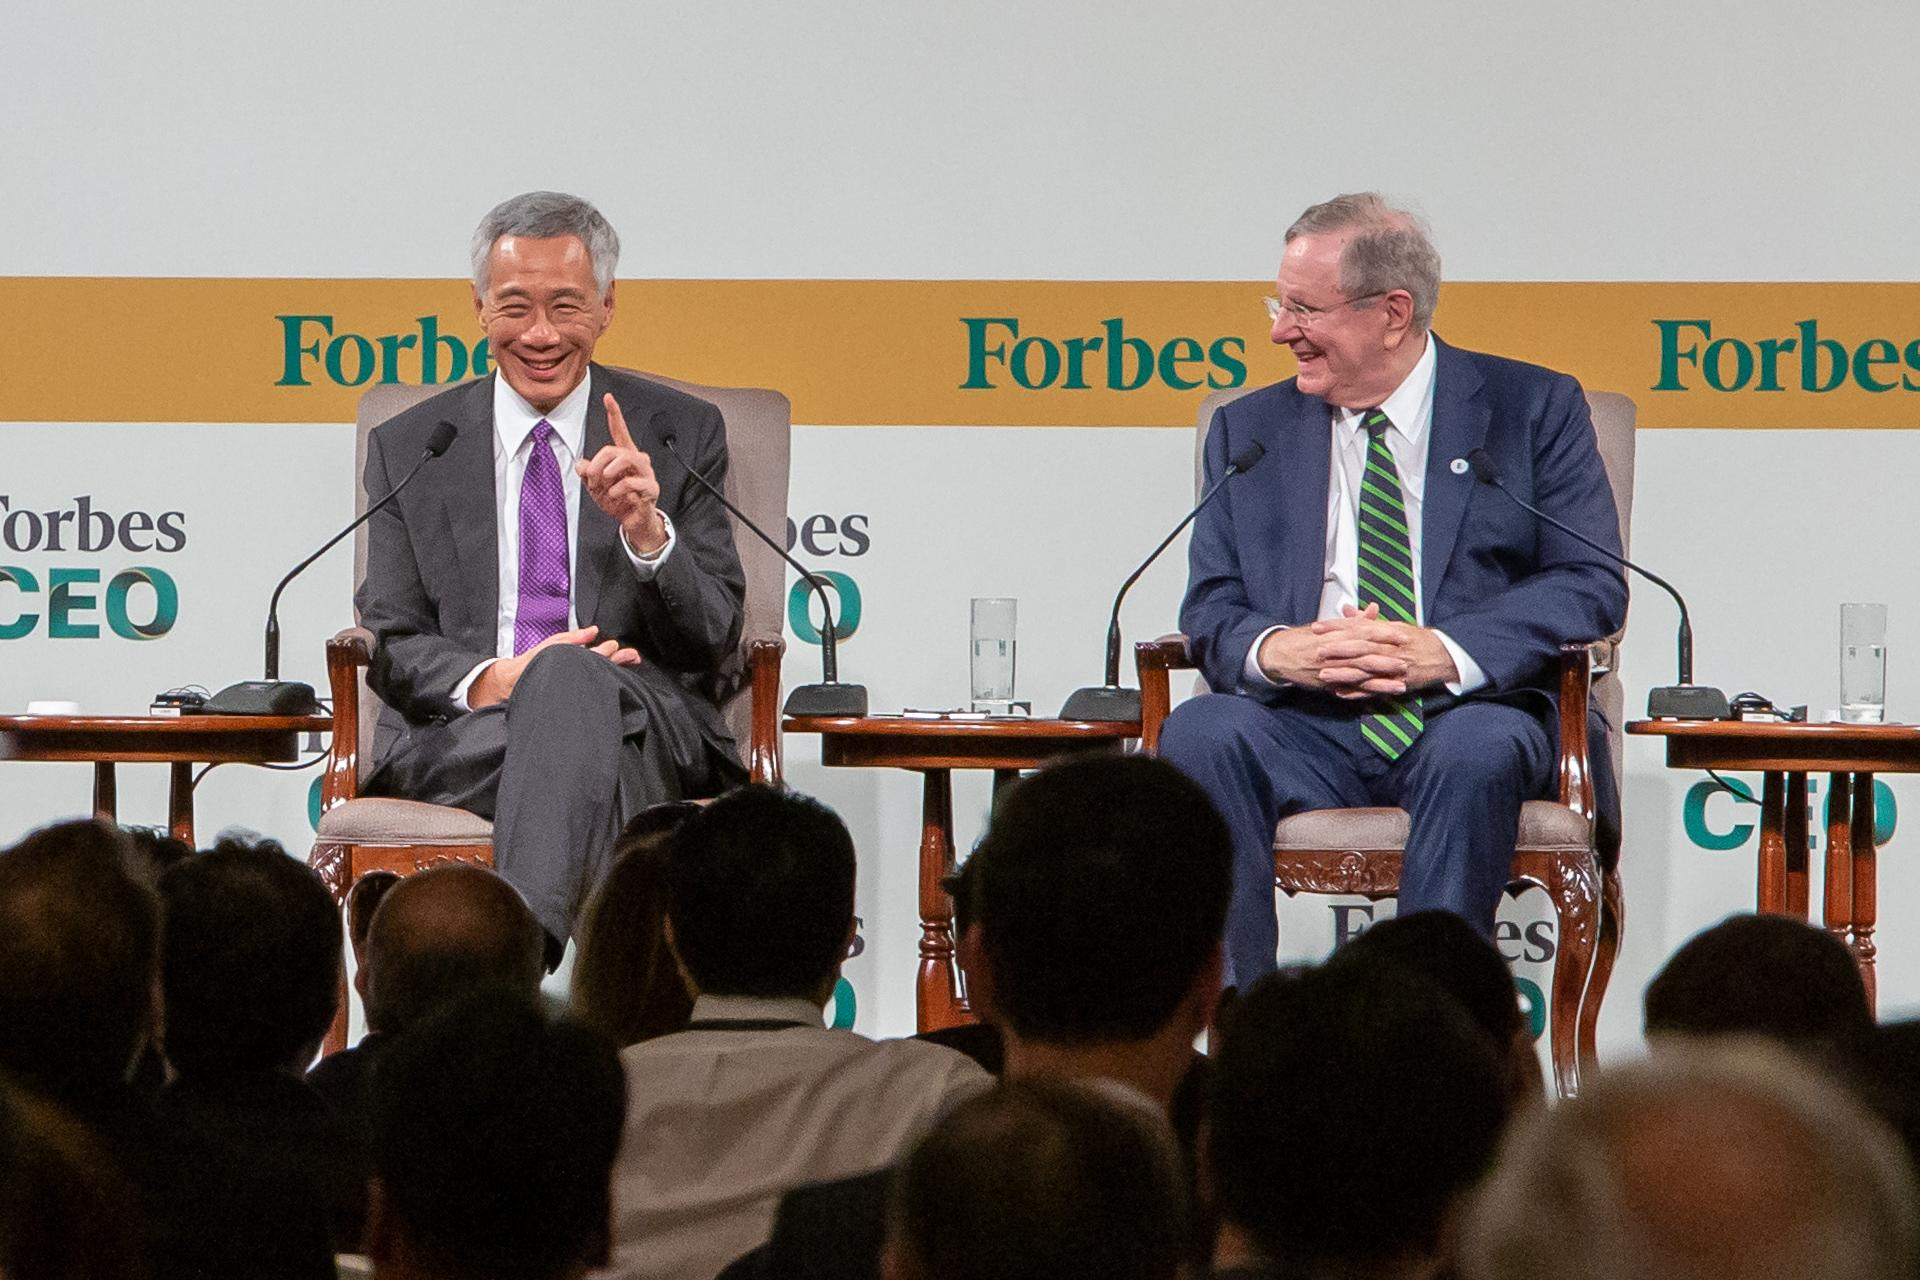 We must make enough of our own babies to secure Singapore's future: Lee Hsien Loong